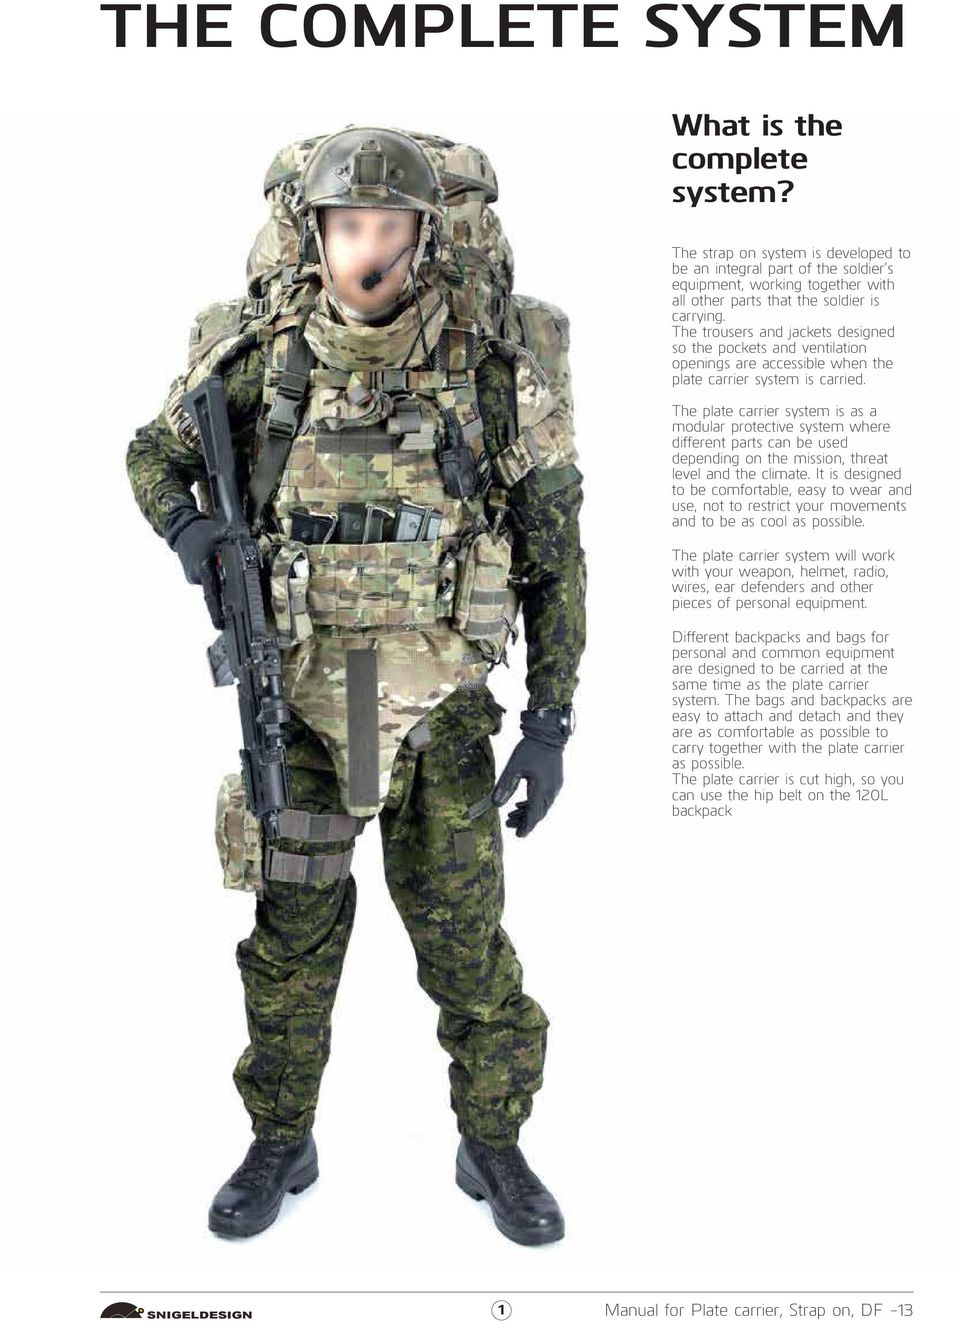 The plate carrier system is as a modular protective system where different parts can be used depending on the mission, threat level and the climate.